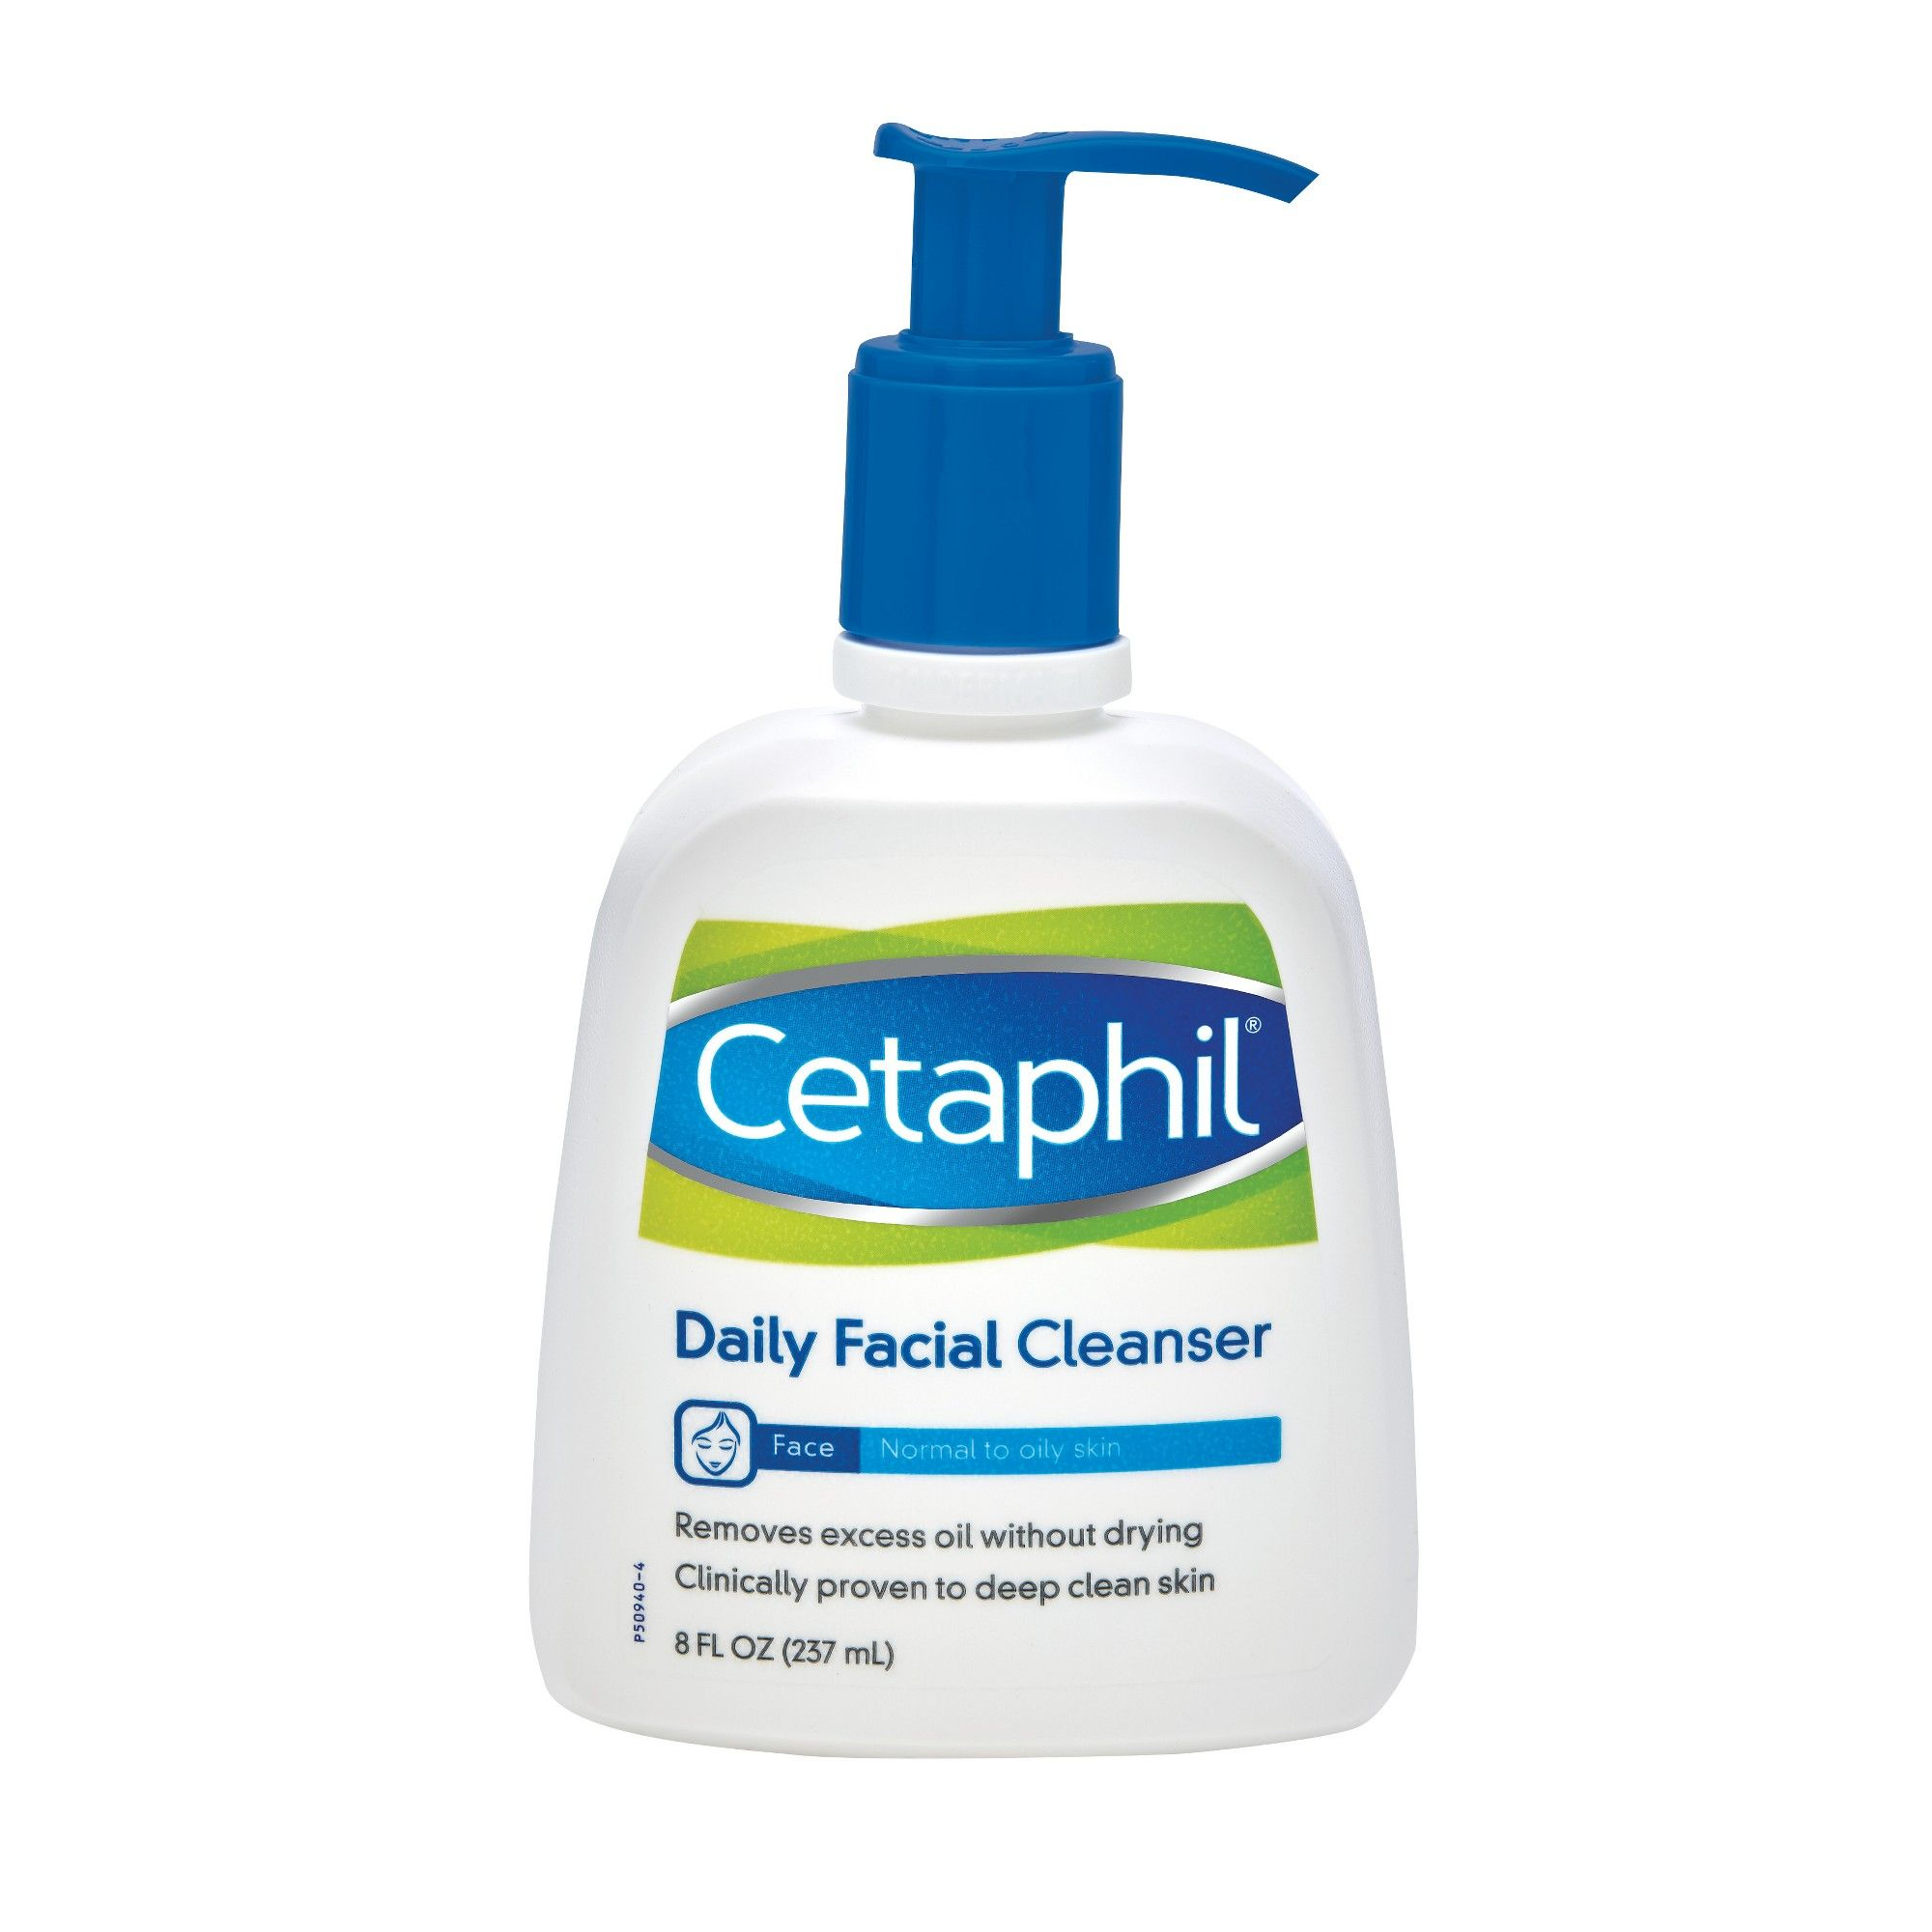 Cetaphil Daily Facial Cleanser 8oz Face cleanser